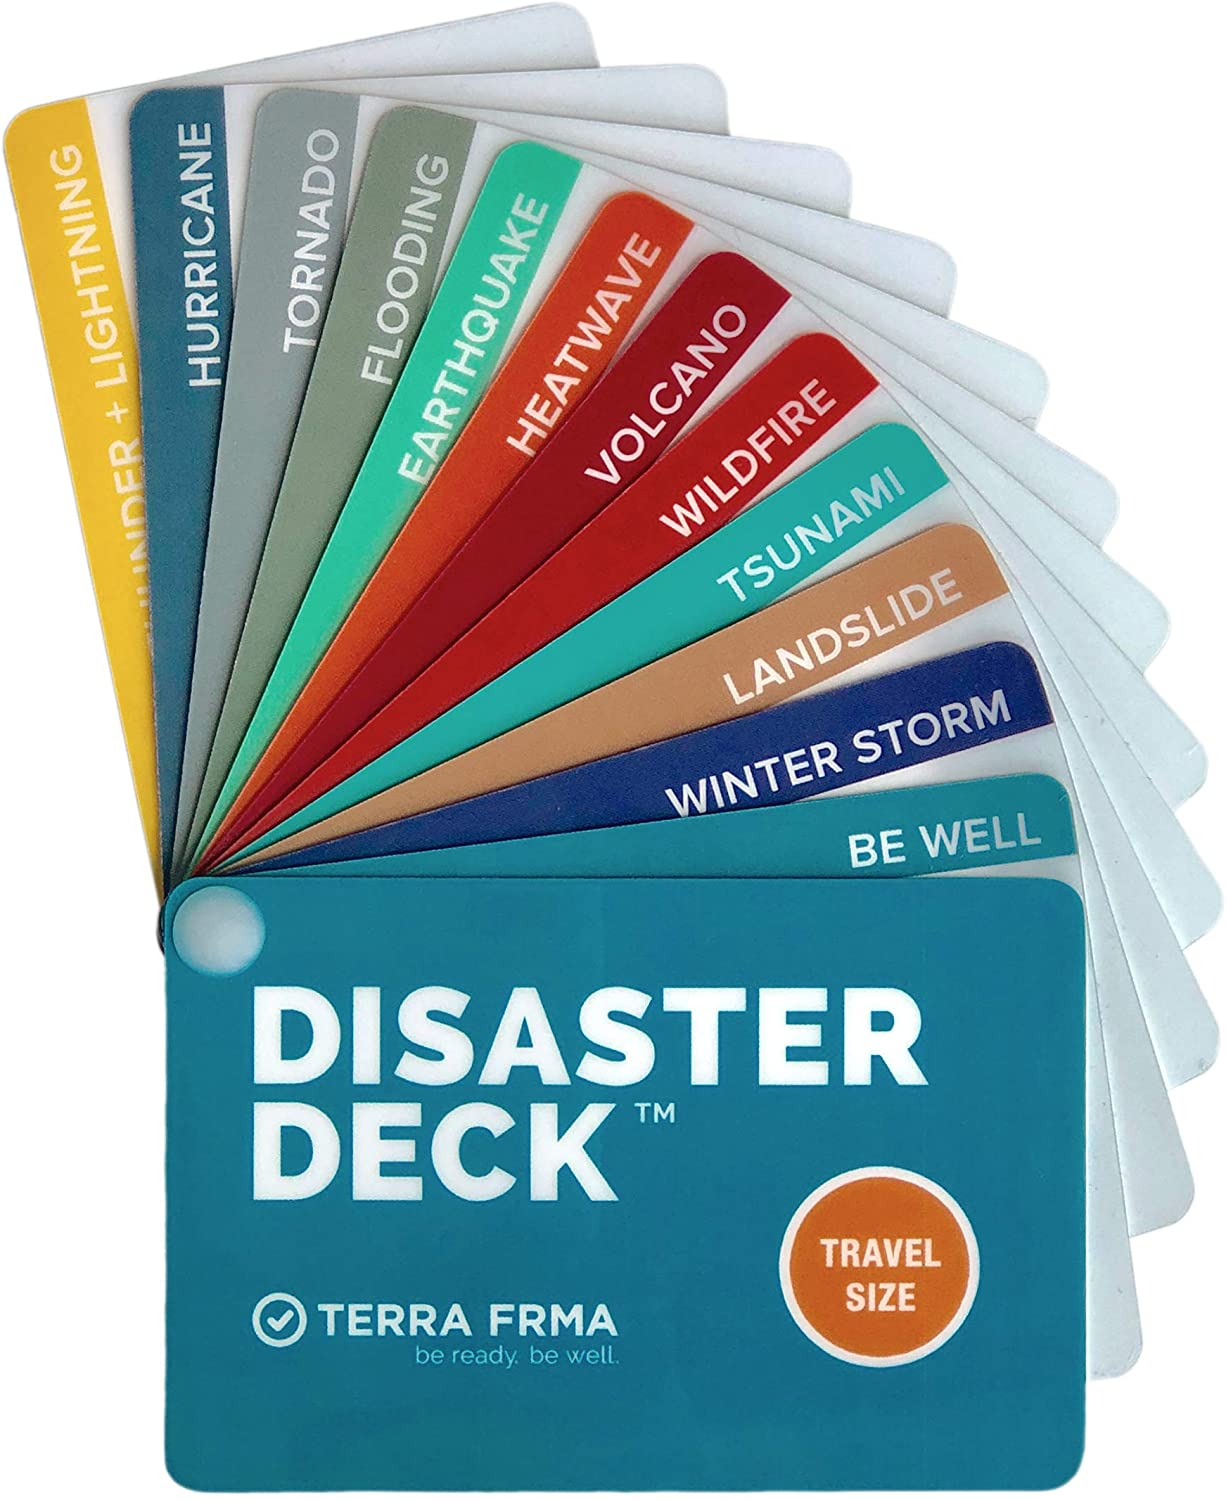 Disaster Deck - Pocket-sized Emergency Survival Instructions for Wildfire, Earthquakes, Hurricane, Winter Storm + Other Disasters